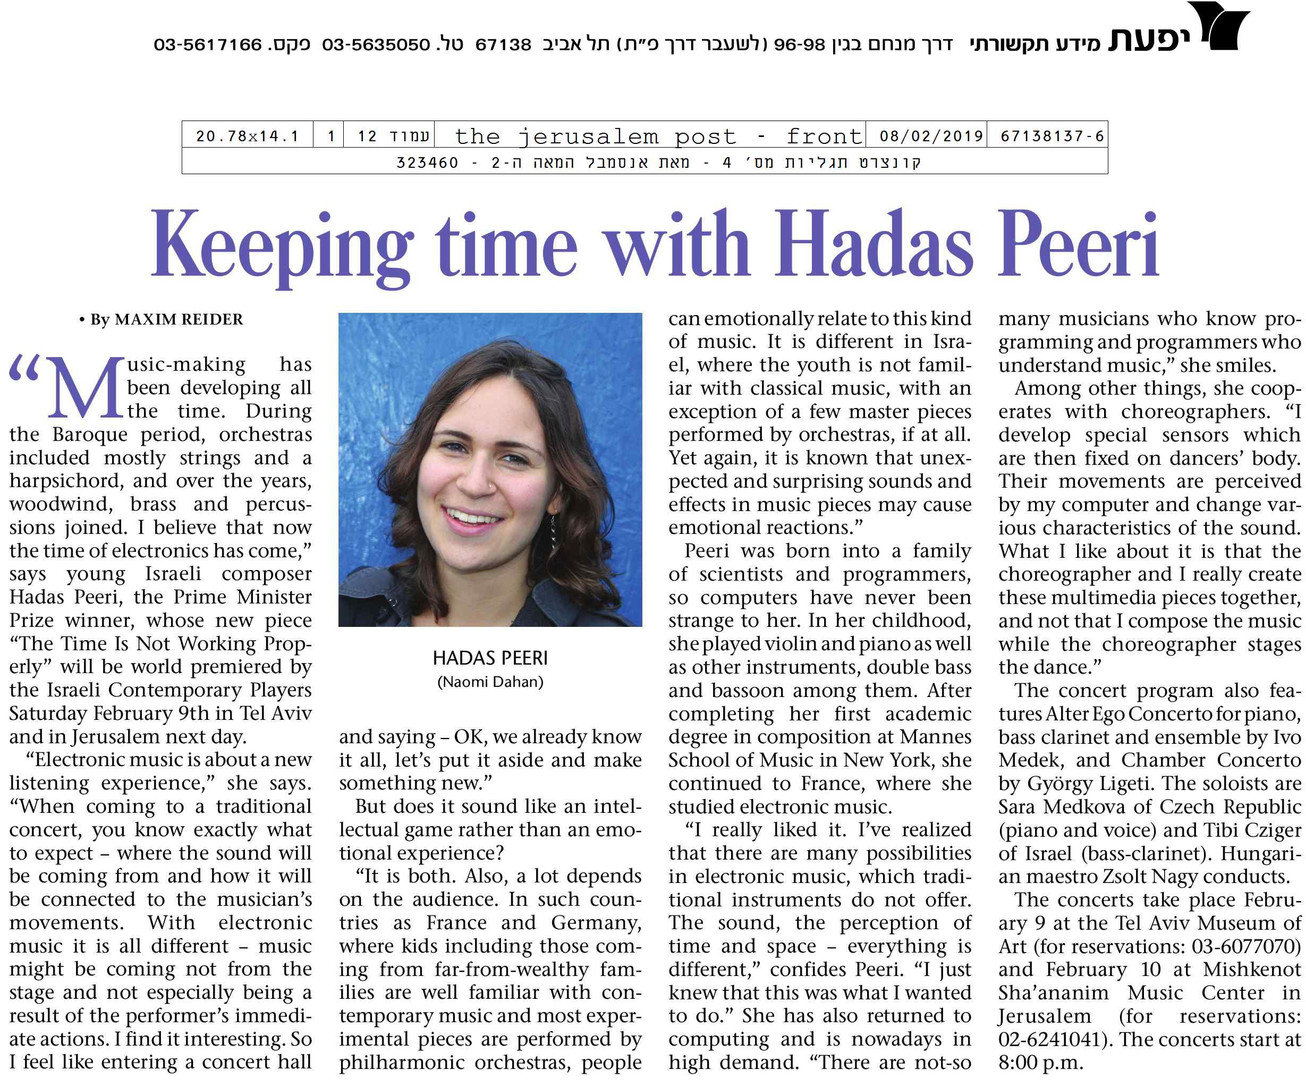 Keeping time with Hadas Peeri